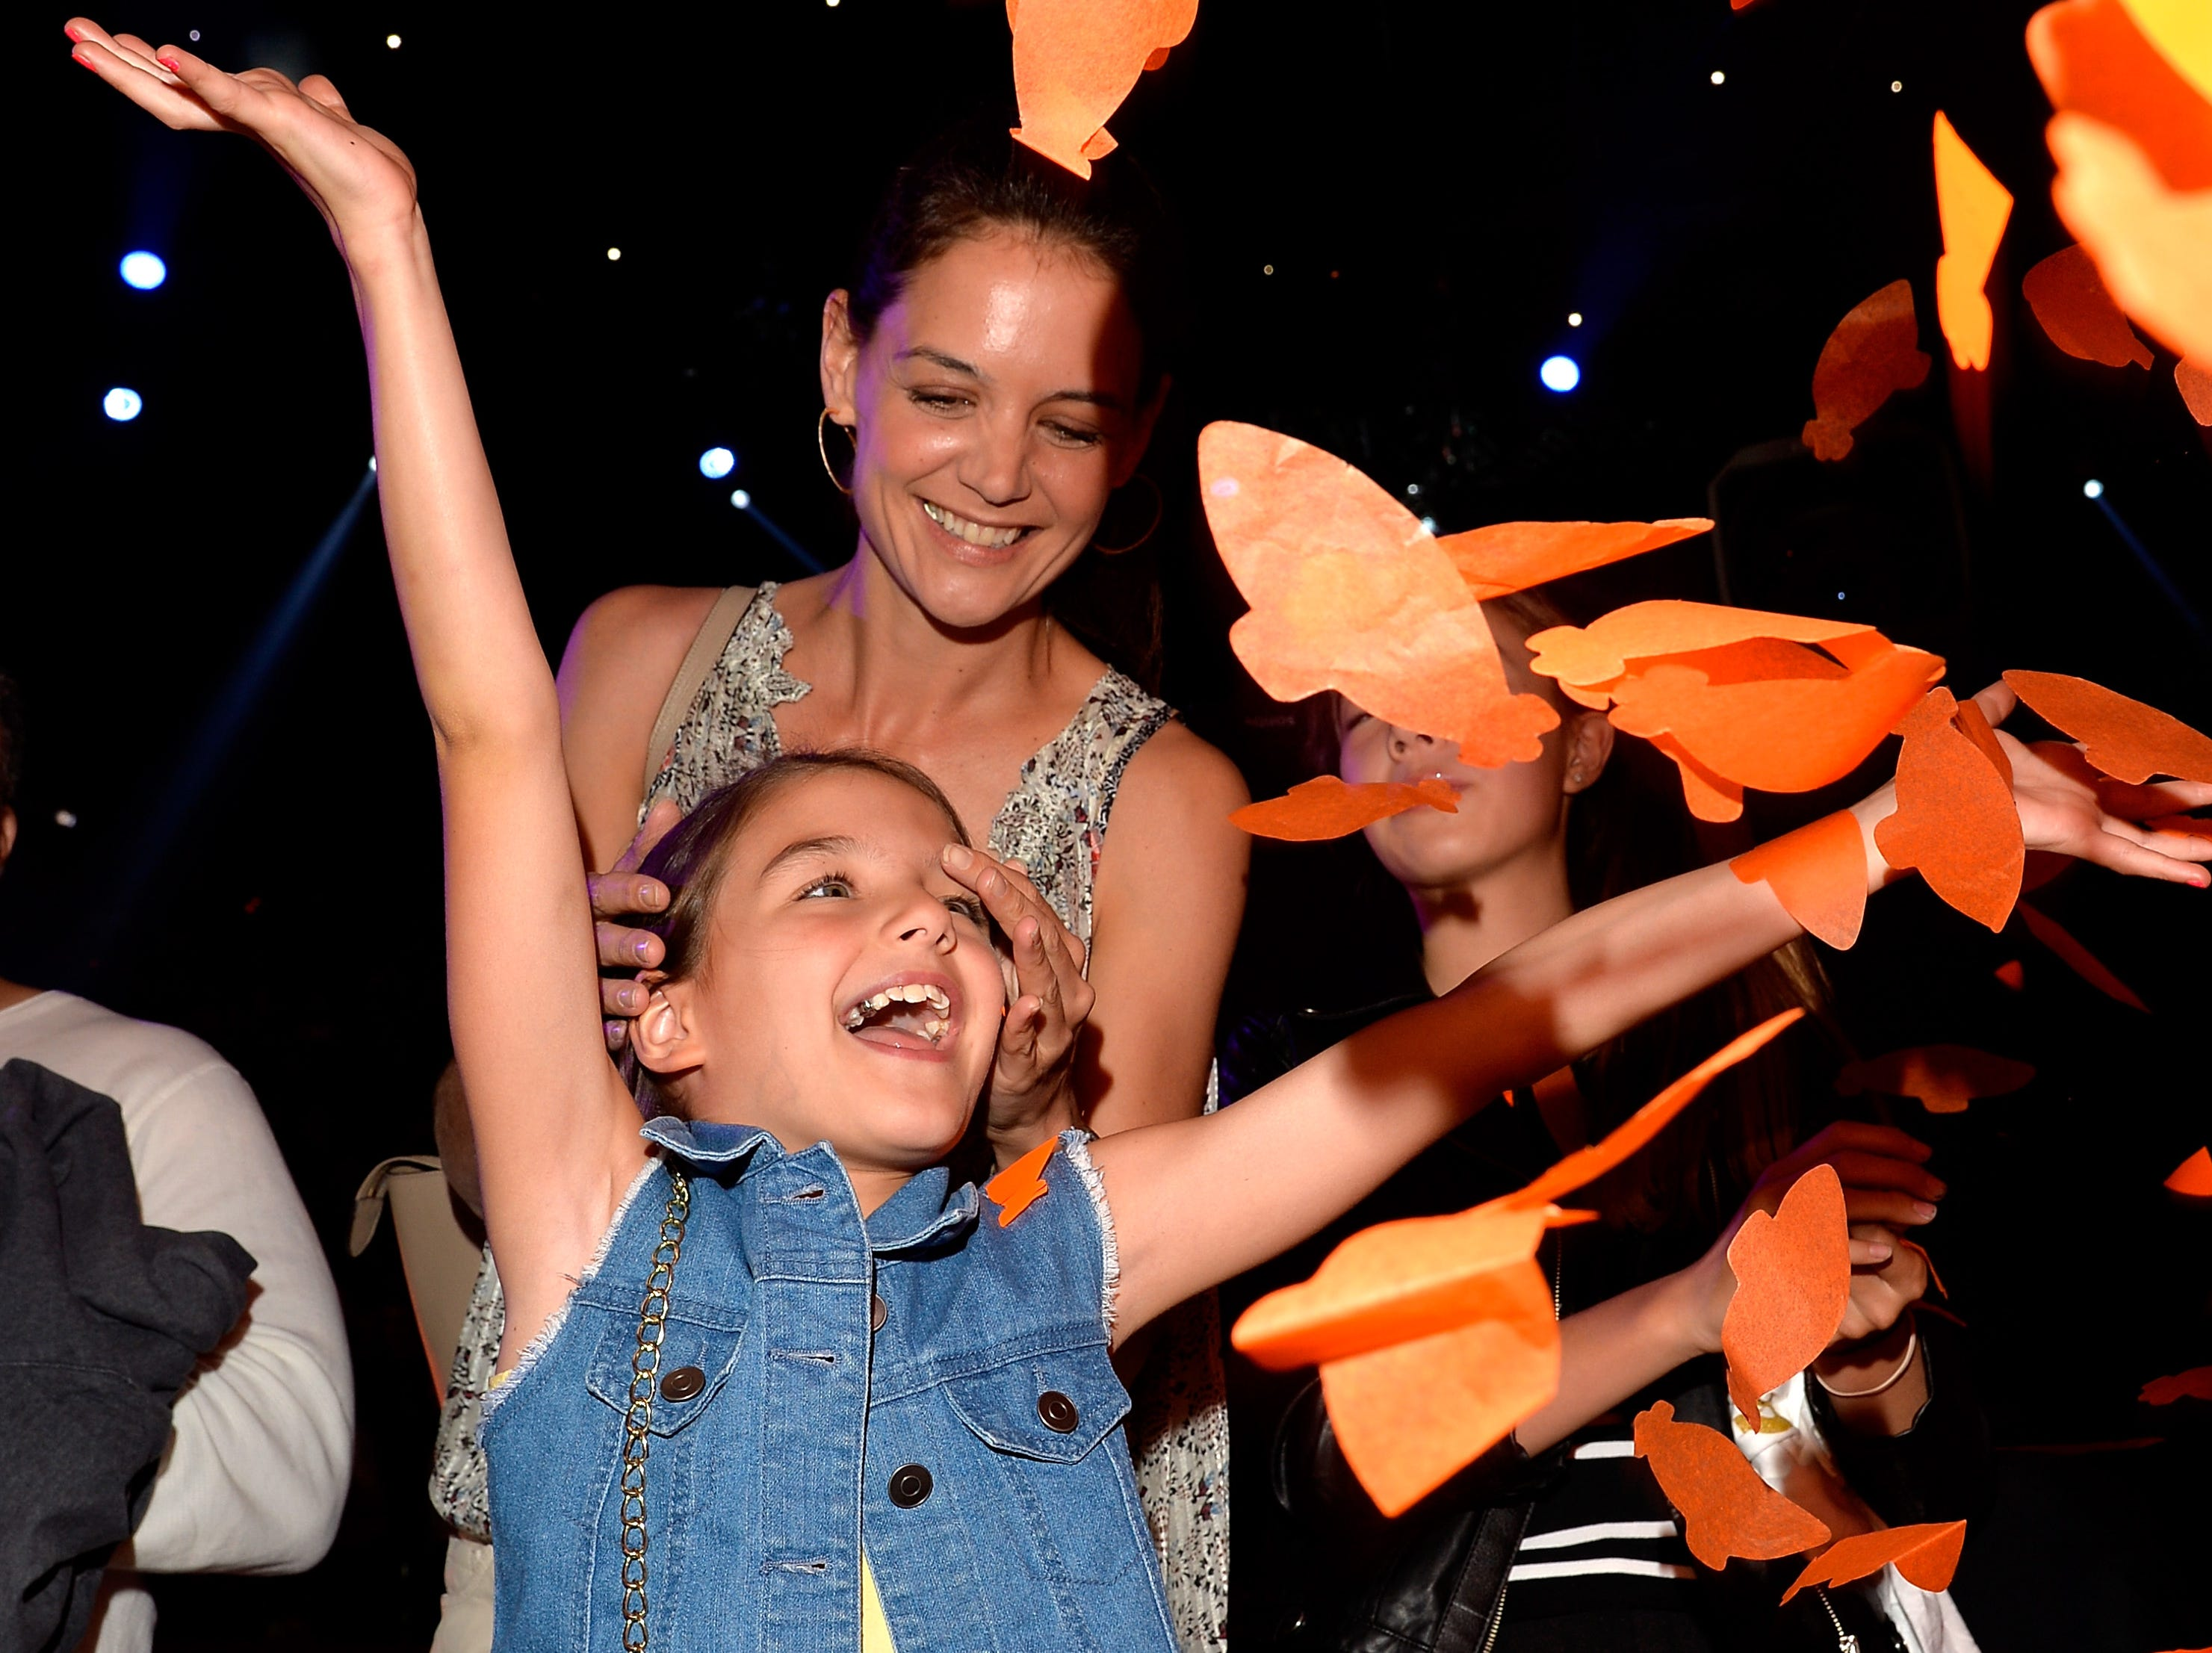 Actress Katie Holmes with her daugher, Suri Cruise, in 2015